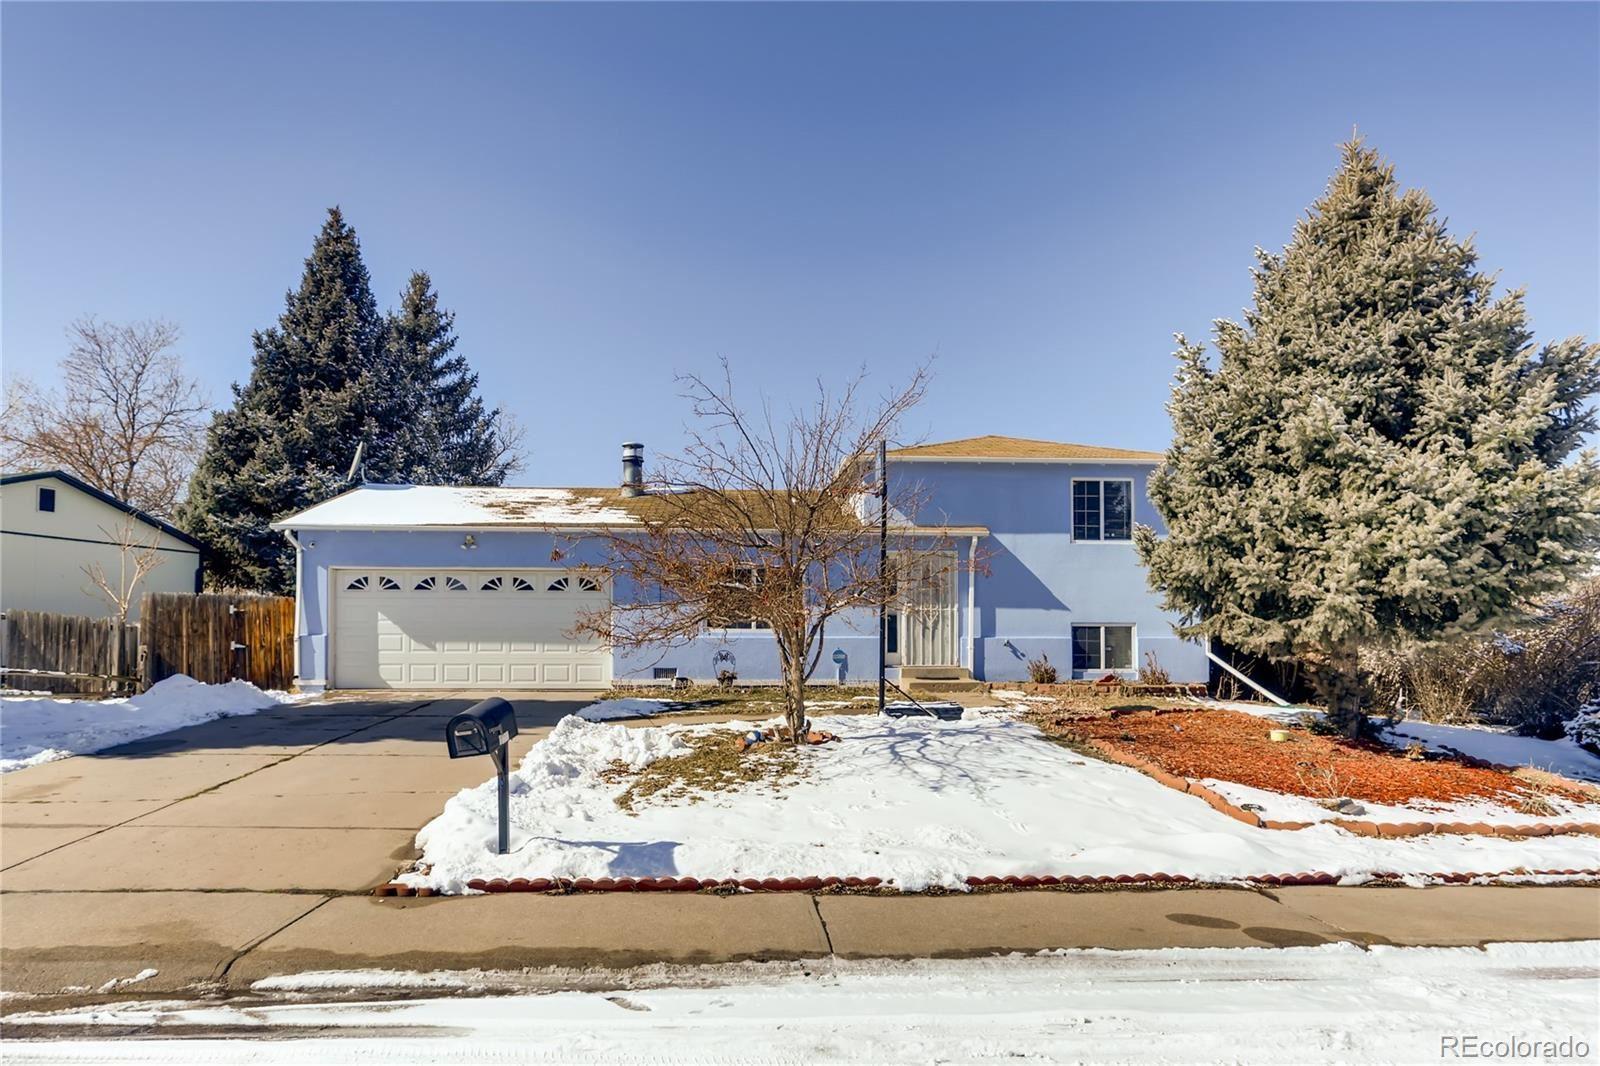 2927 S OURAY Way, Aurora, CO 80013 - #: 1651594